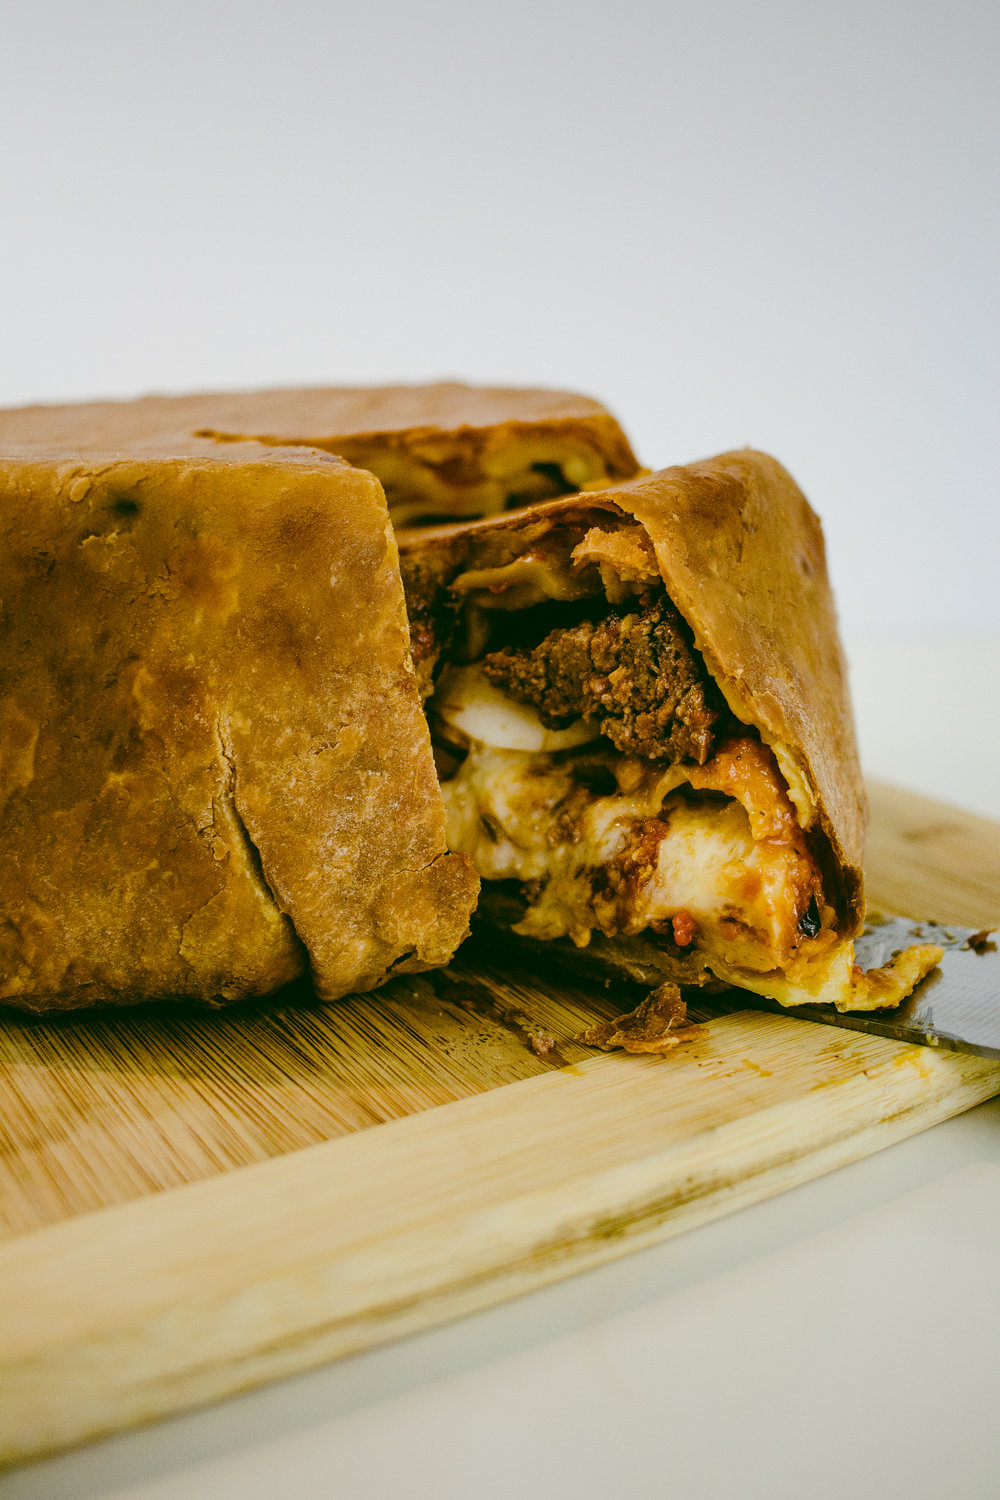 020618_Timpano for Two-6.jpg